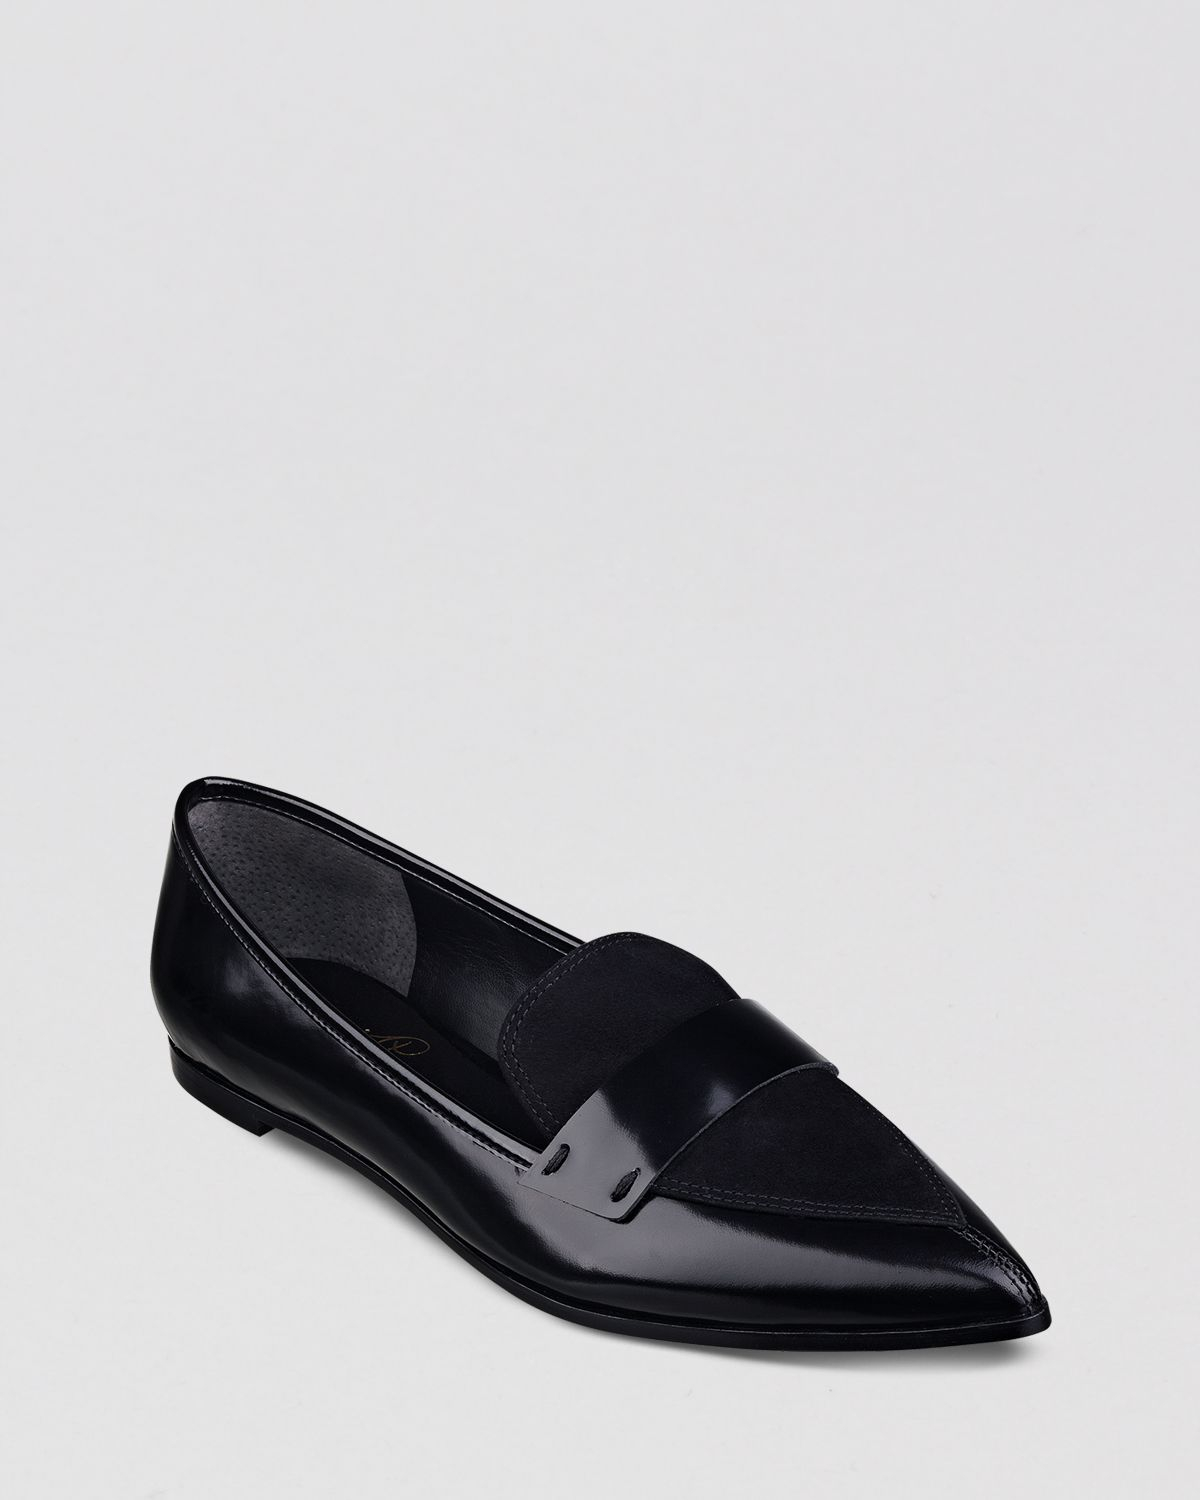 Black Patent Leather Shoes Flats